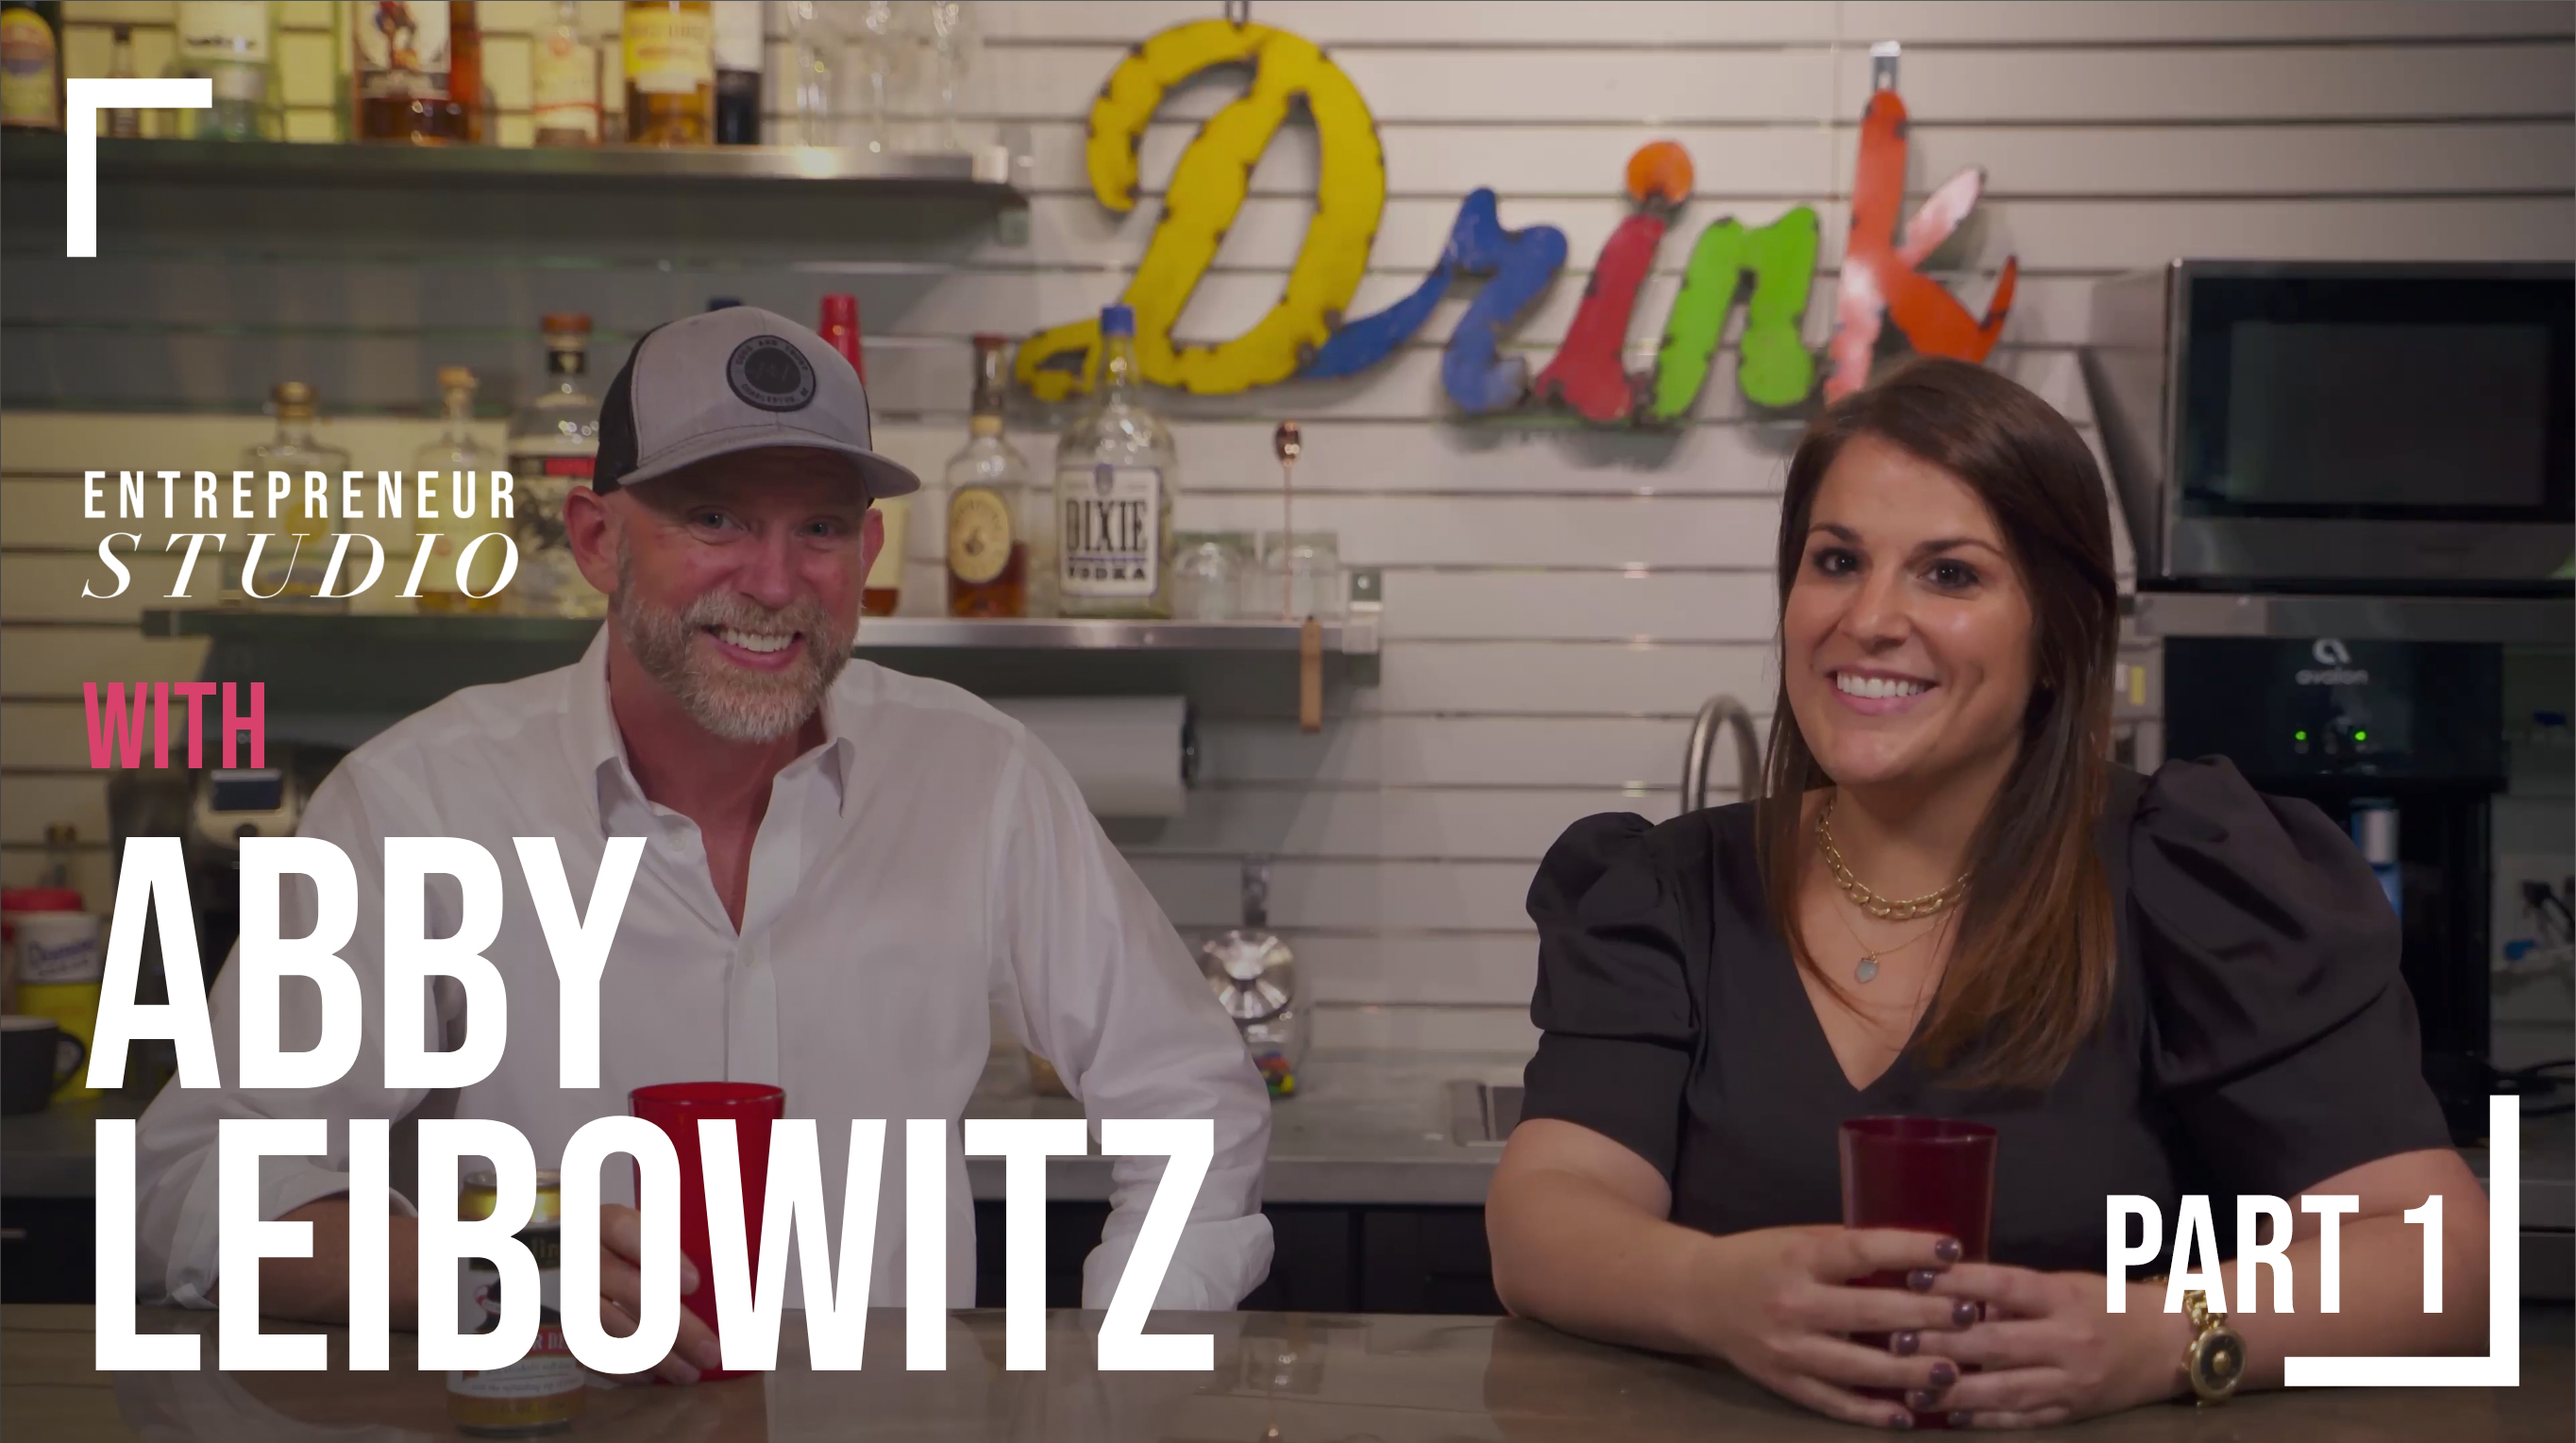 Entrepreneur Studio Series - Episode 3 - Overcoming Growing Pains While Scaling with Abby Leibowitz